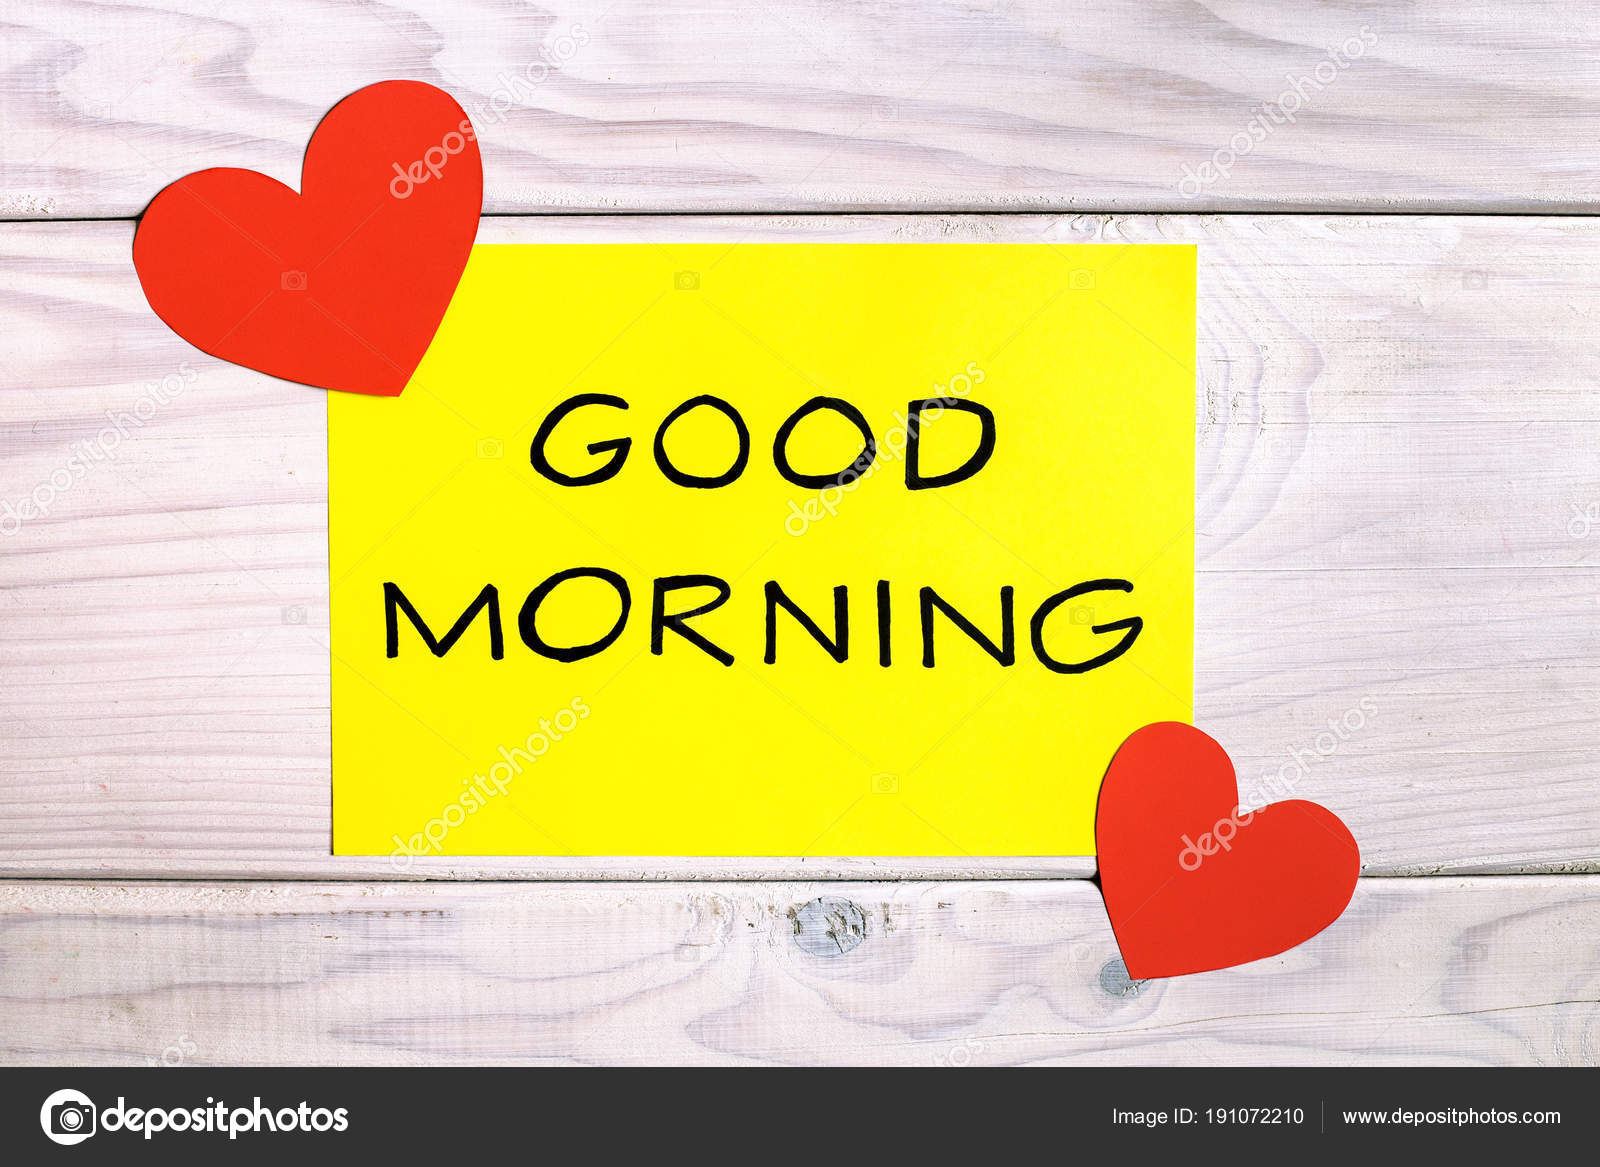 Text Good Morning Heart Shapes Wooden Table Image Intentionally